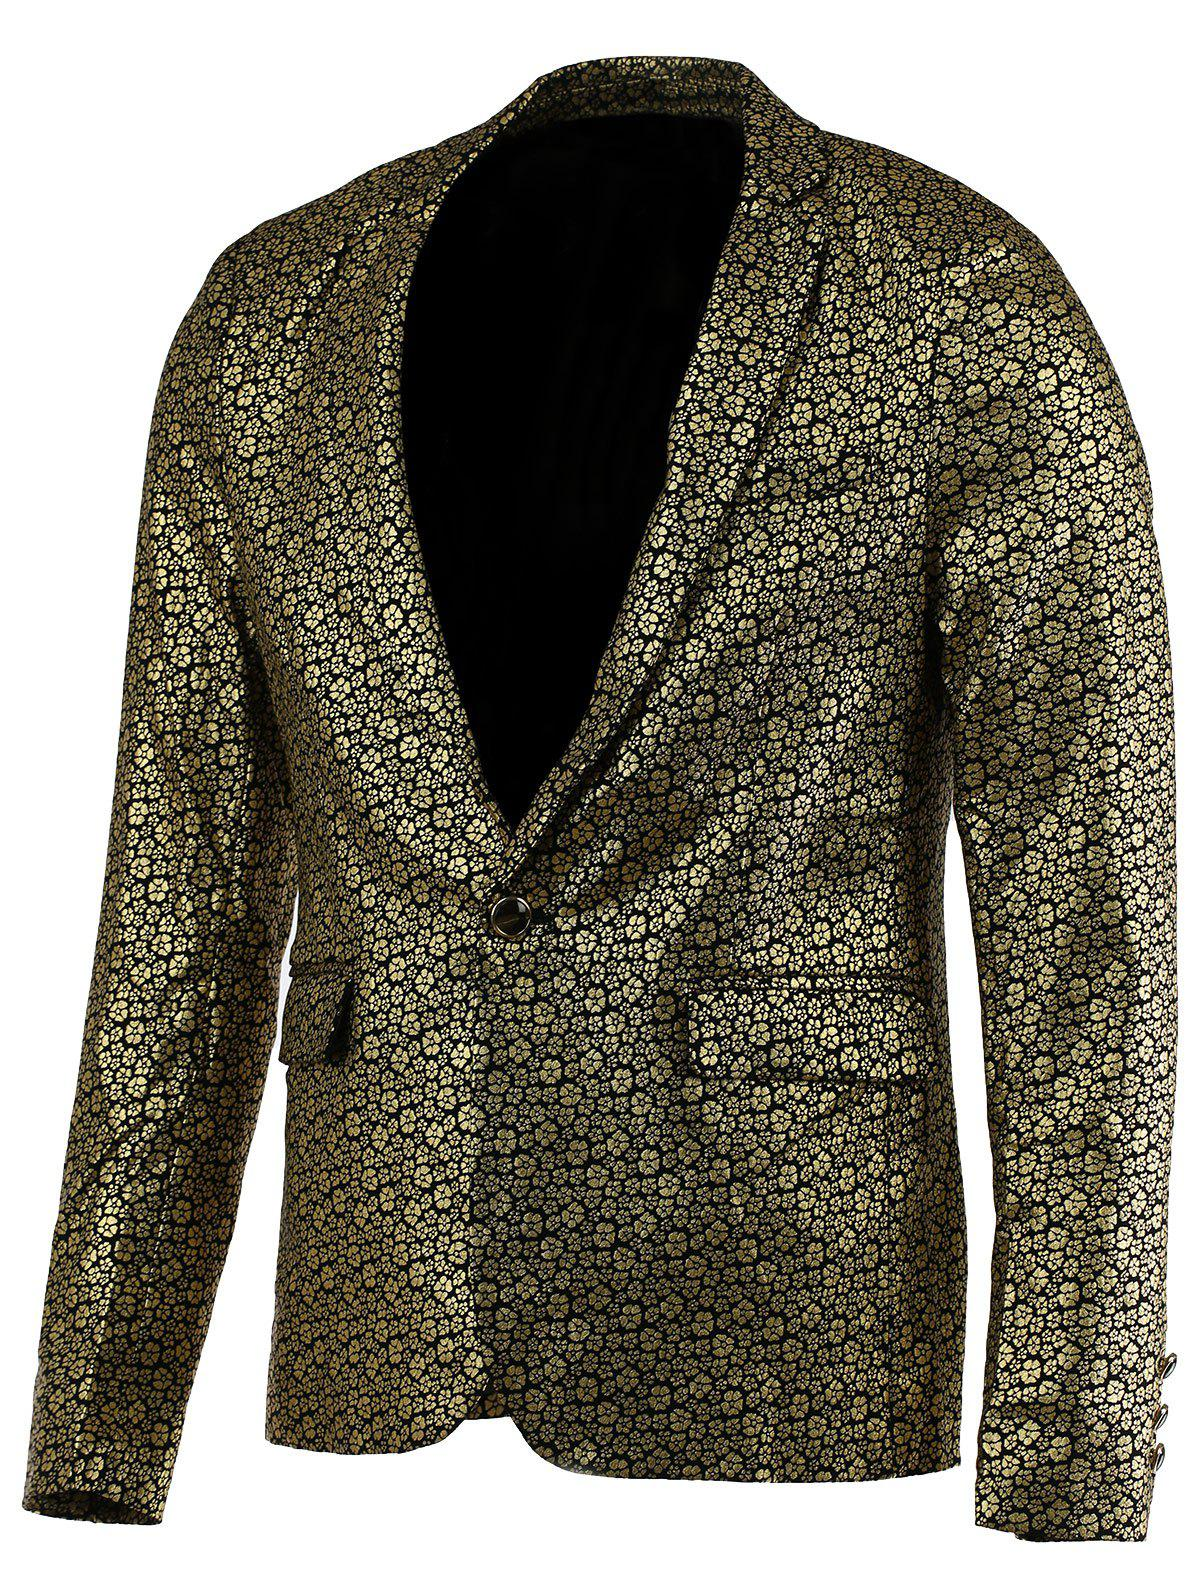 Floral Hot Stamping Printing Lapel Long Sleeve Men's Blazer - GOLDEN 2XL